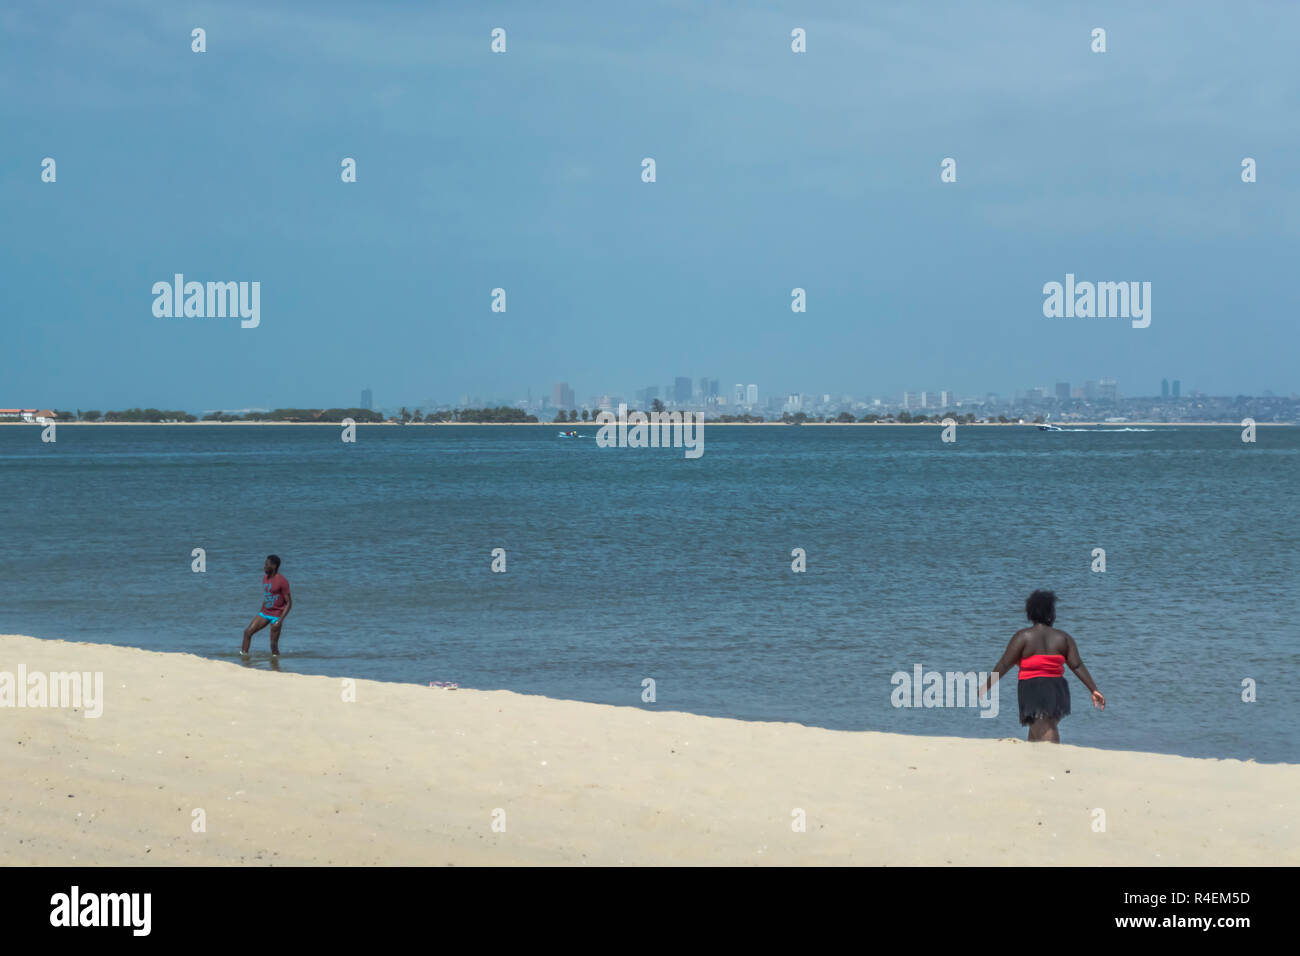 Luanda/Angola - 11 11 2018: View at the beach on Mussulo Island, with a woman walking and a man inside the water ocean, jet boats on water, Luanda cit - Stock Image